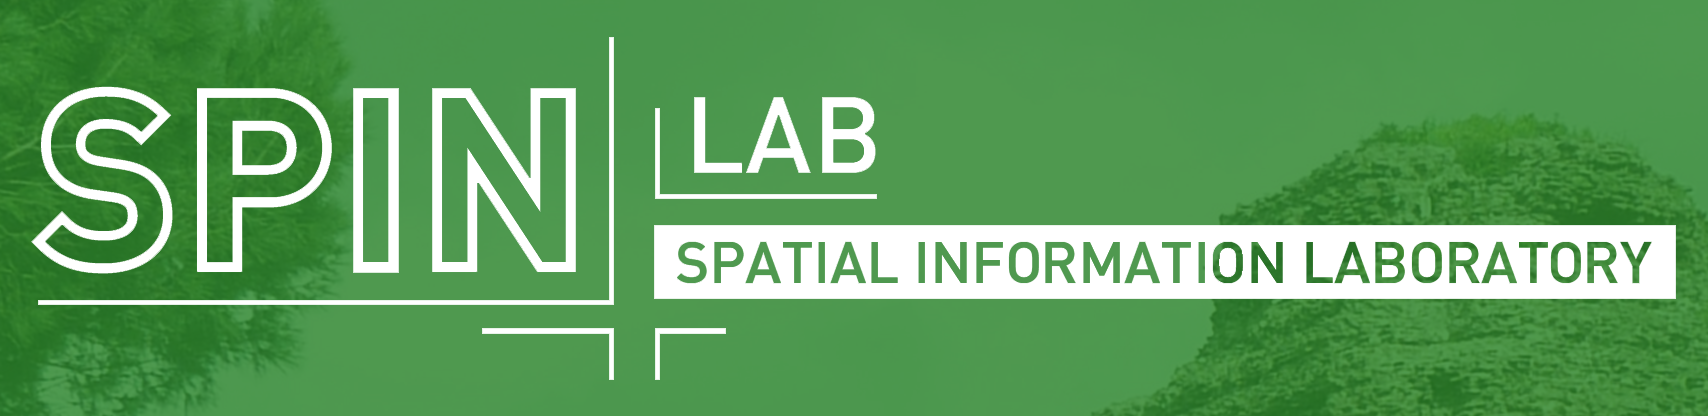 GREEN_spinlab